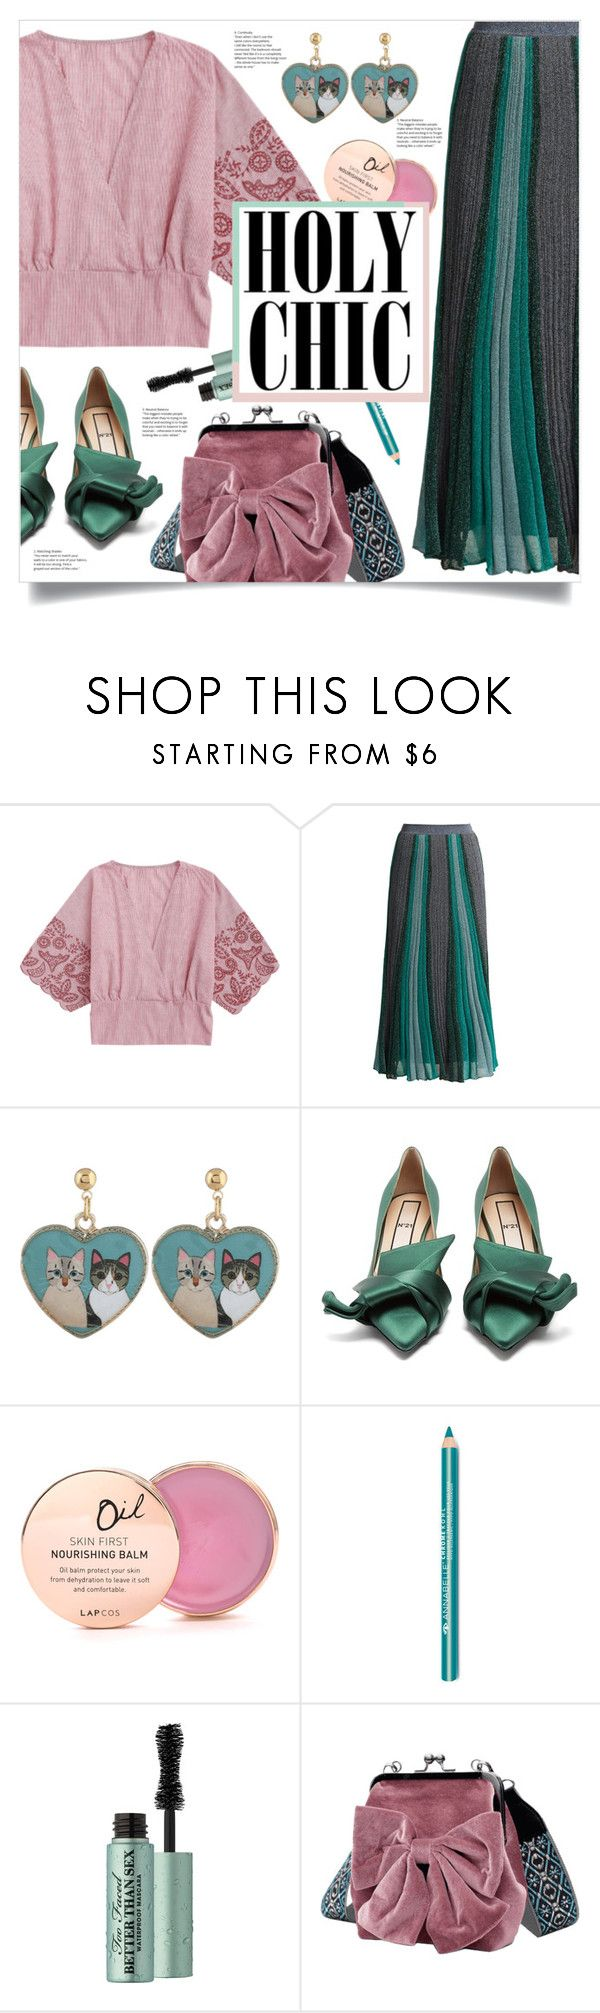 """""""Holy Chic"""" by mahafromkailash ❤ liked on Polyvore featuring Missoni, N°21, Lapcos and Too Faced Cosmetics"""